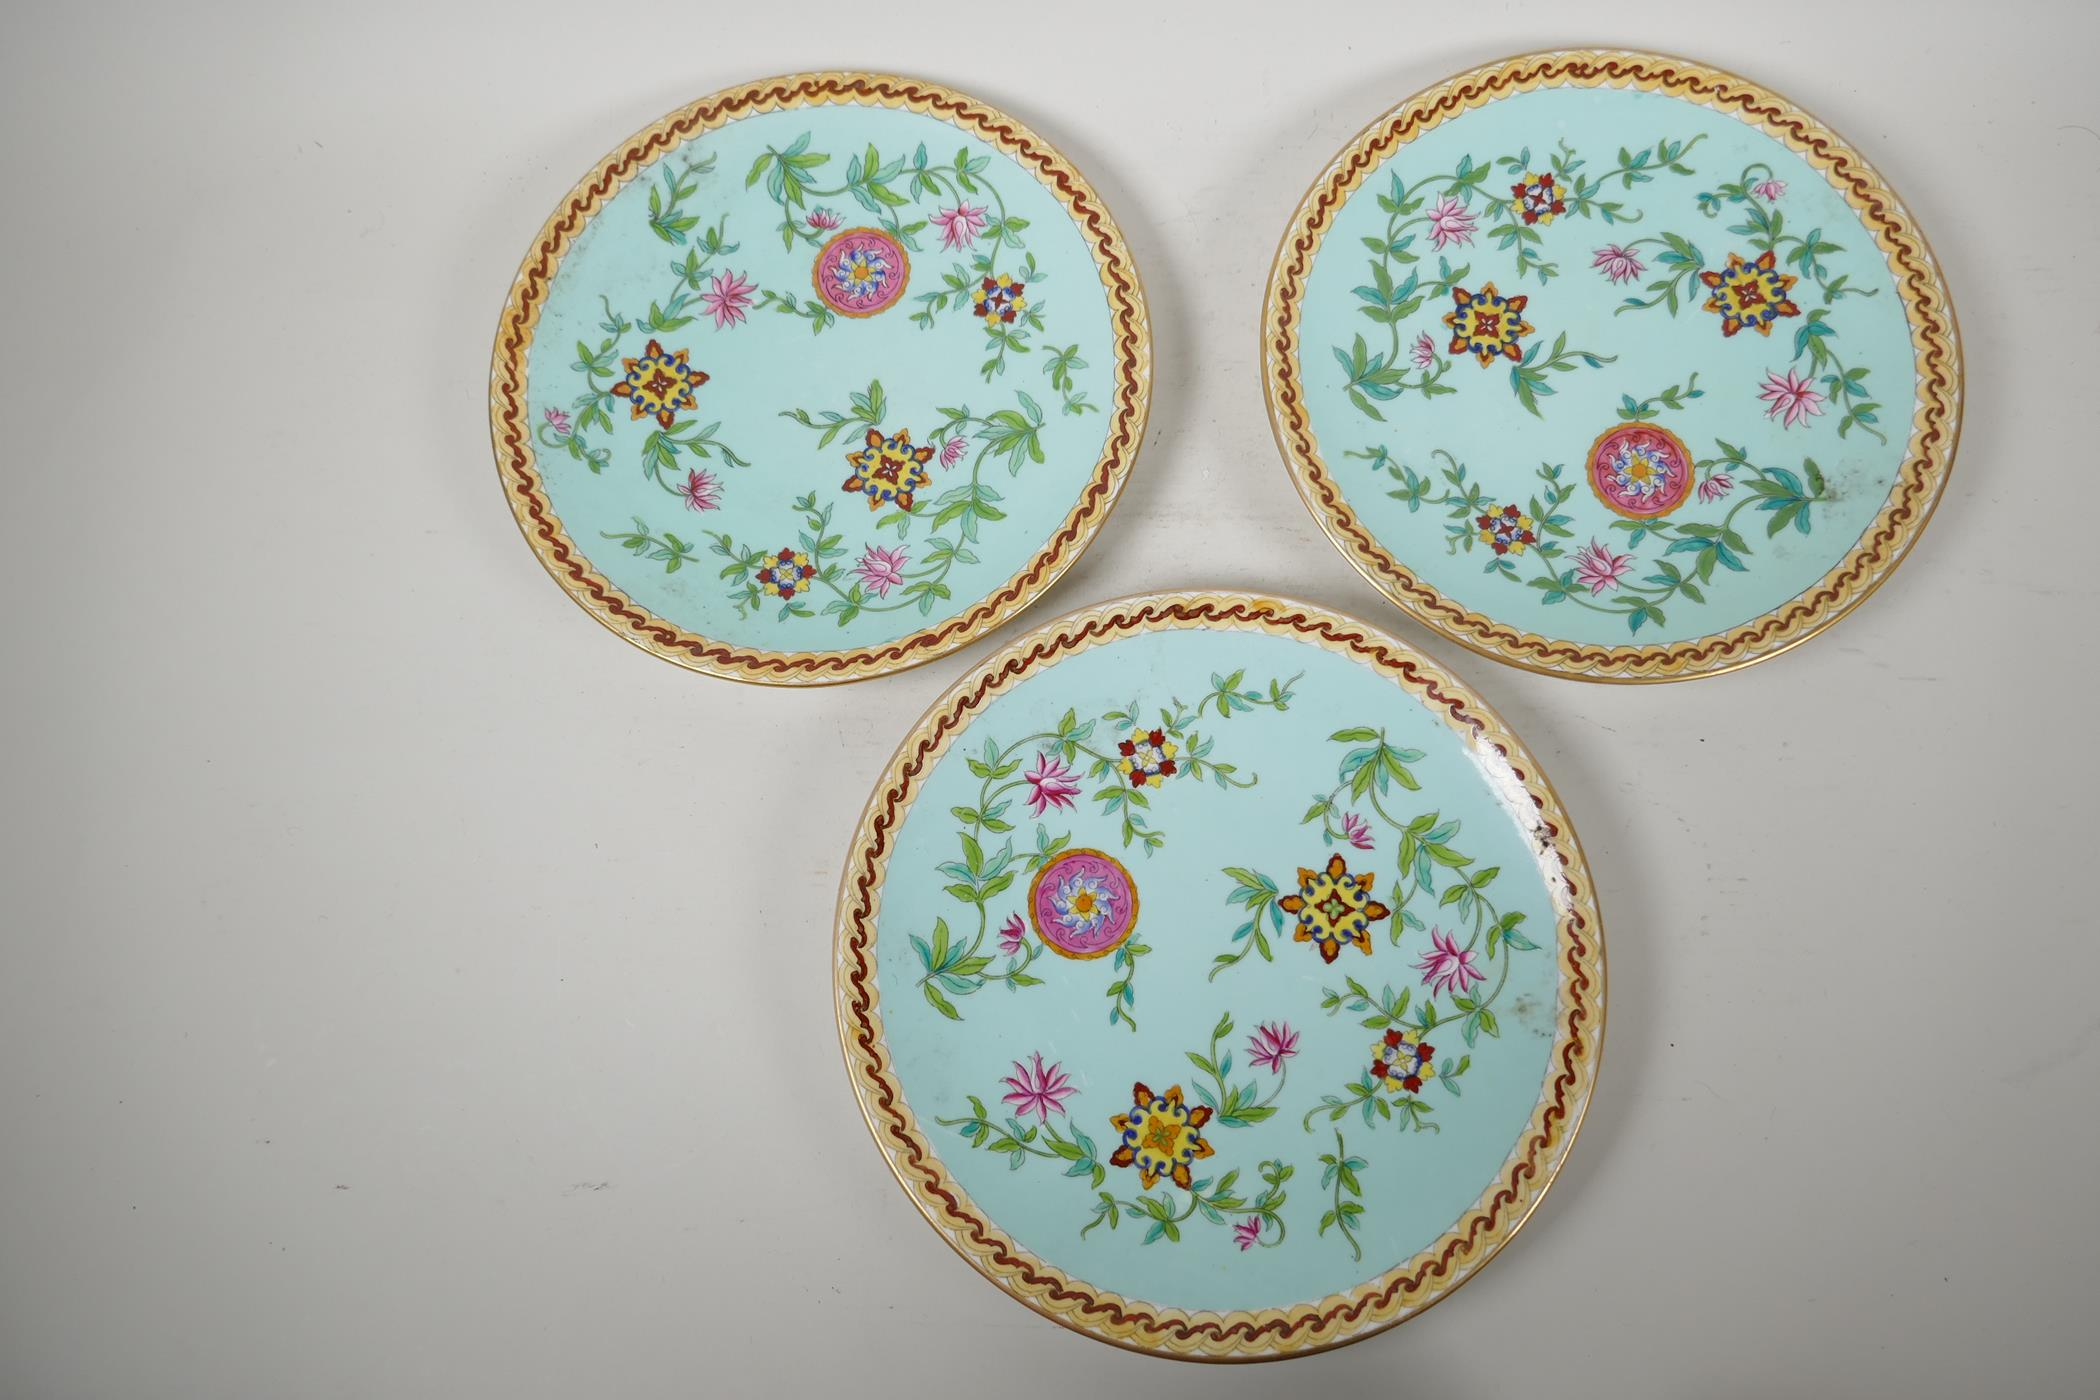 """Three continental porcelain plates decorated in the Oriental manner, 9½"""" diameter - Image 2 of 3"""